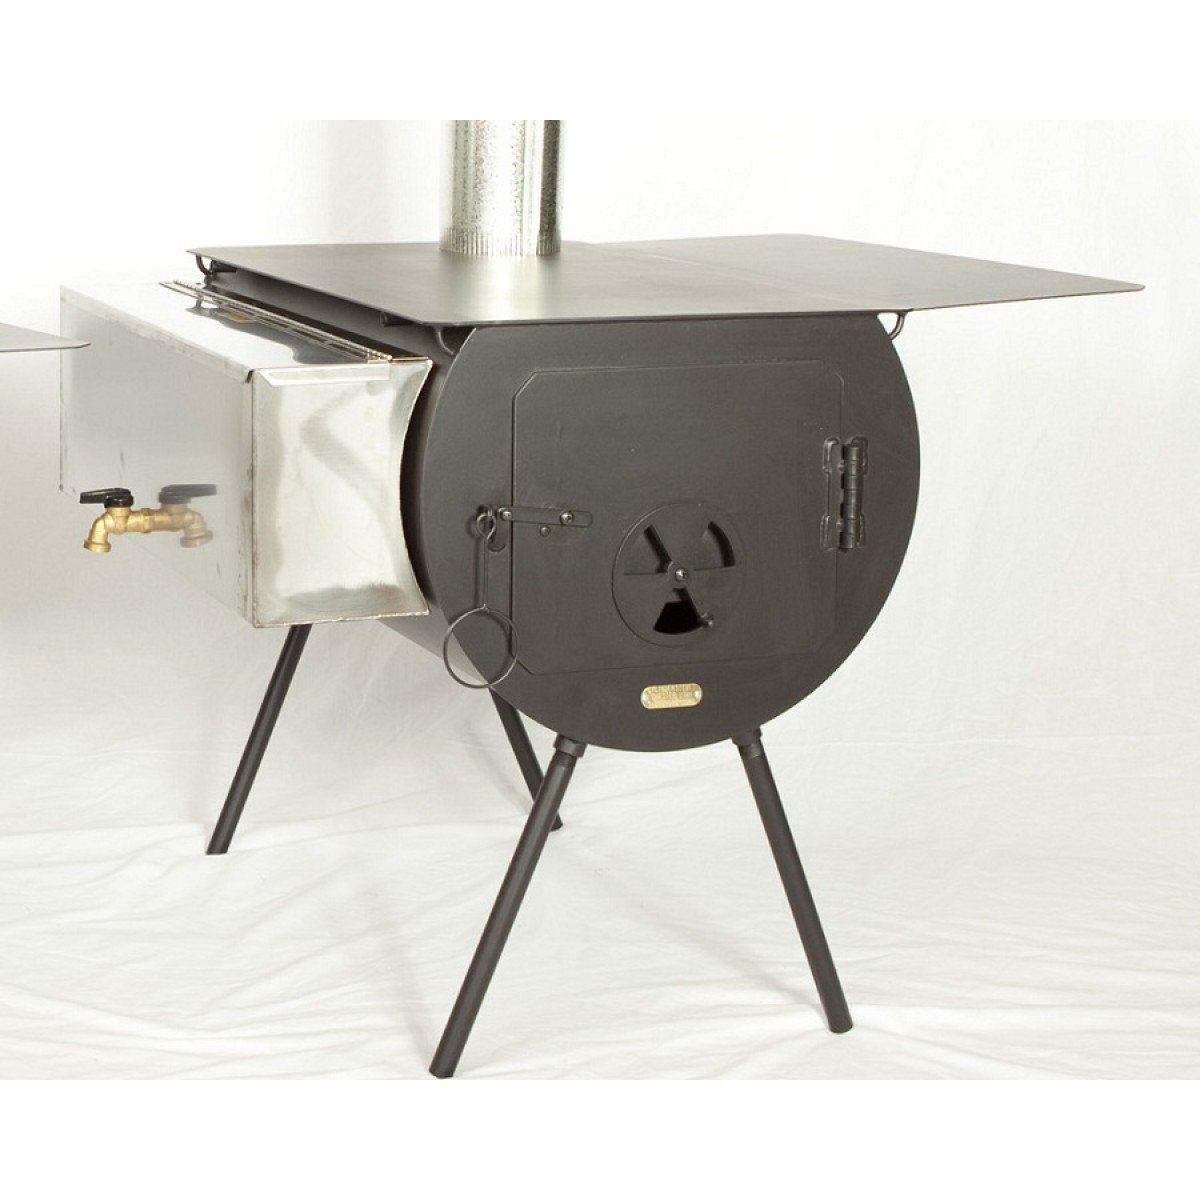 Yukon Tent Stove Package With Grate Wood Cylinder Stove